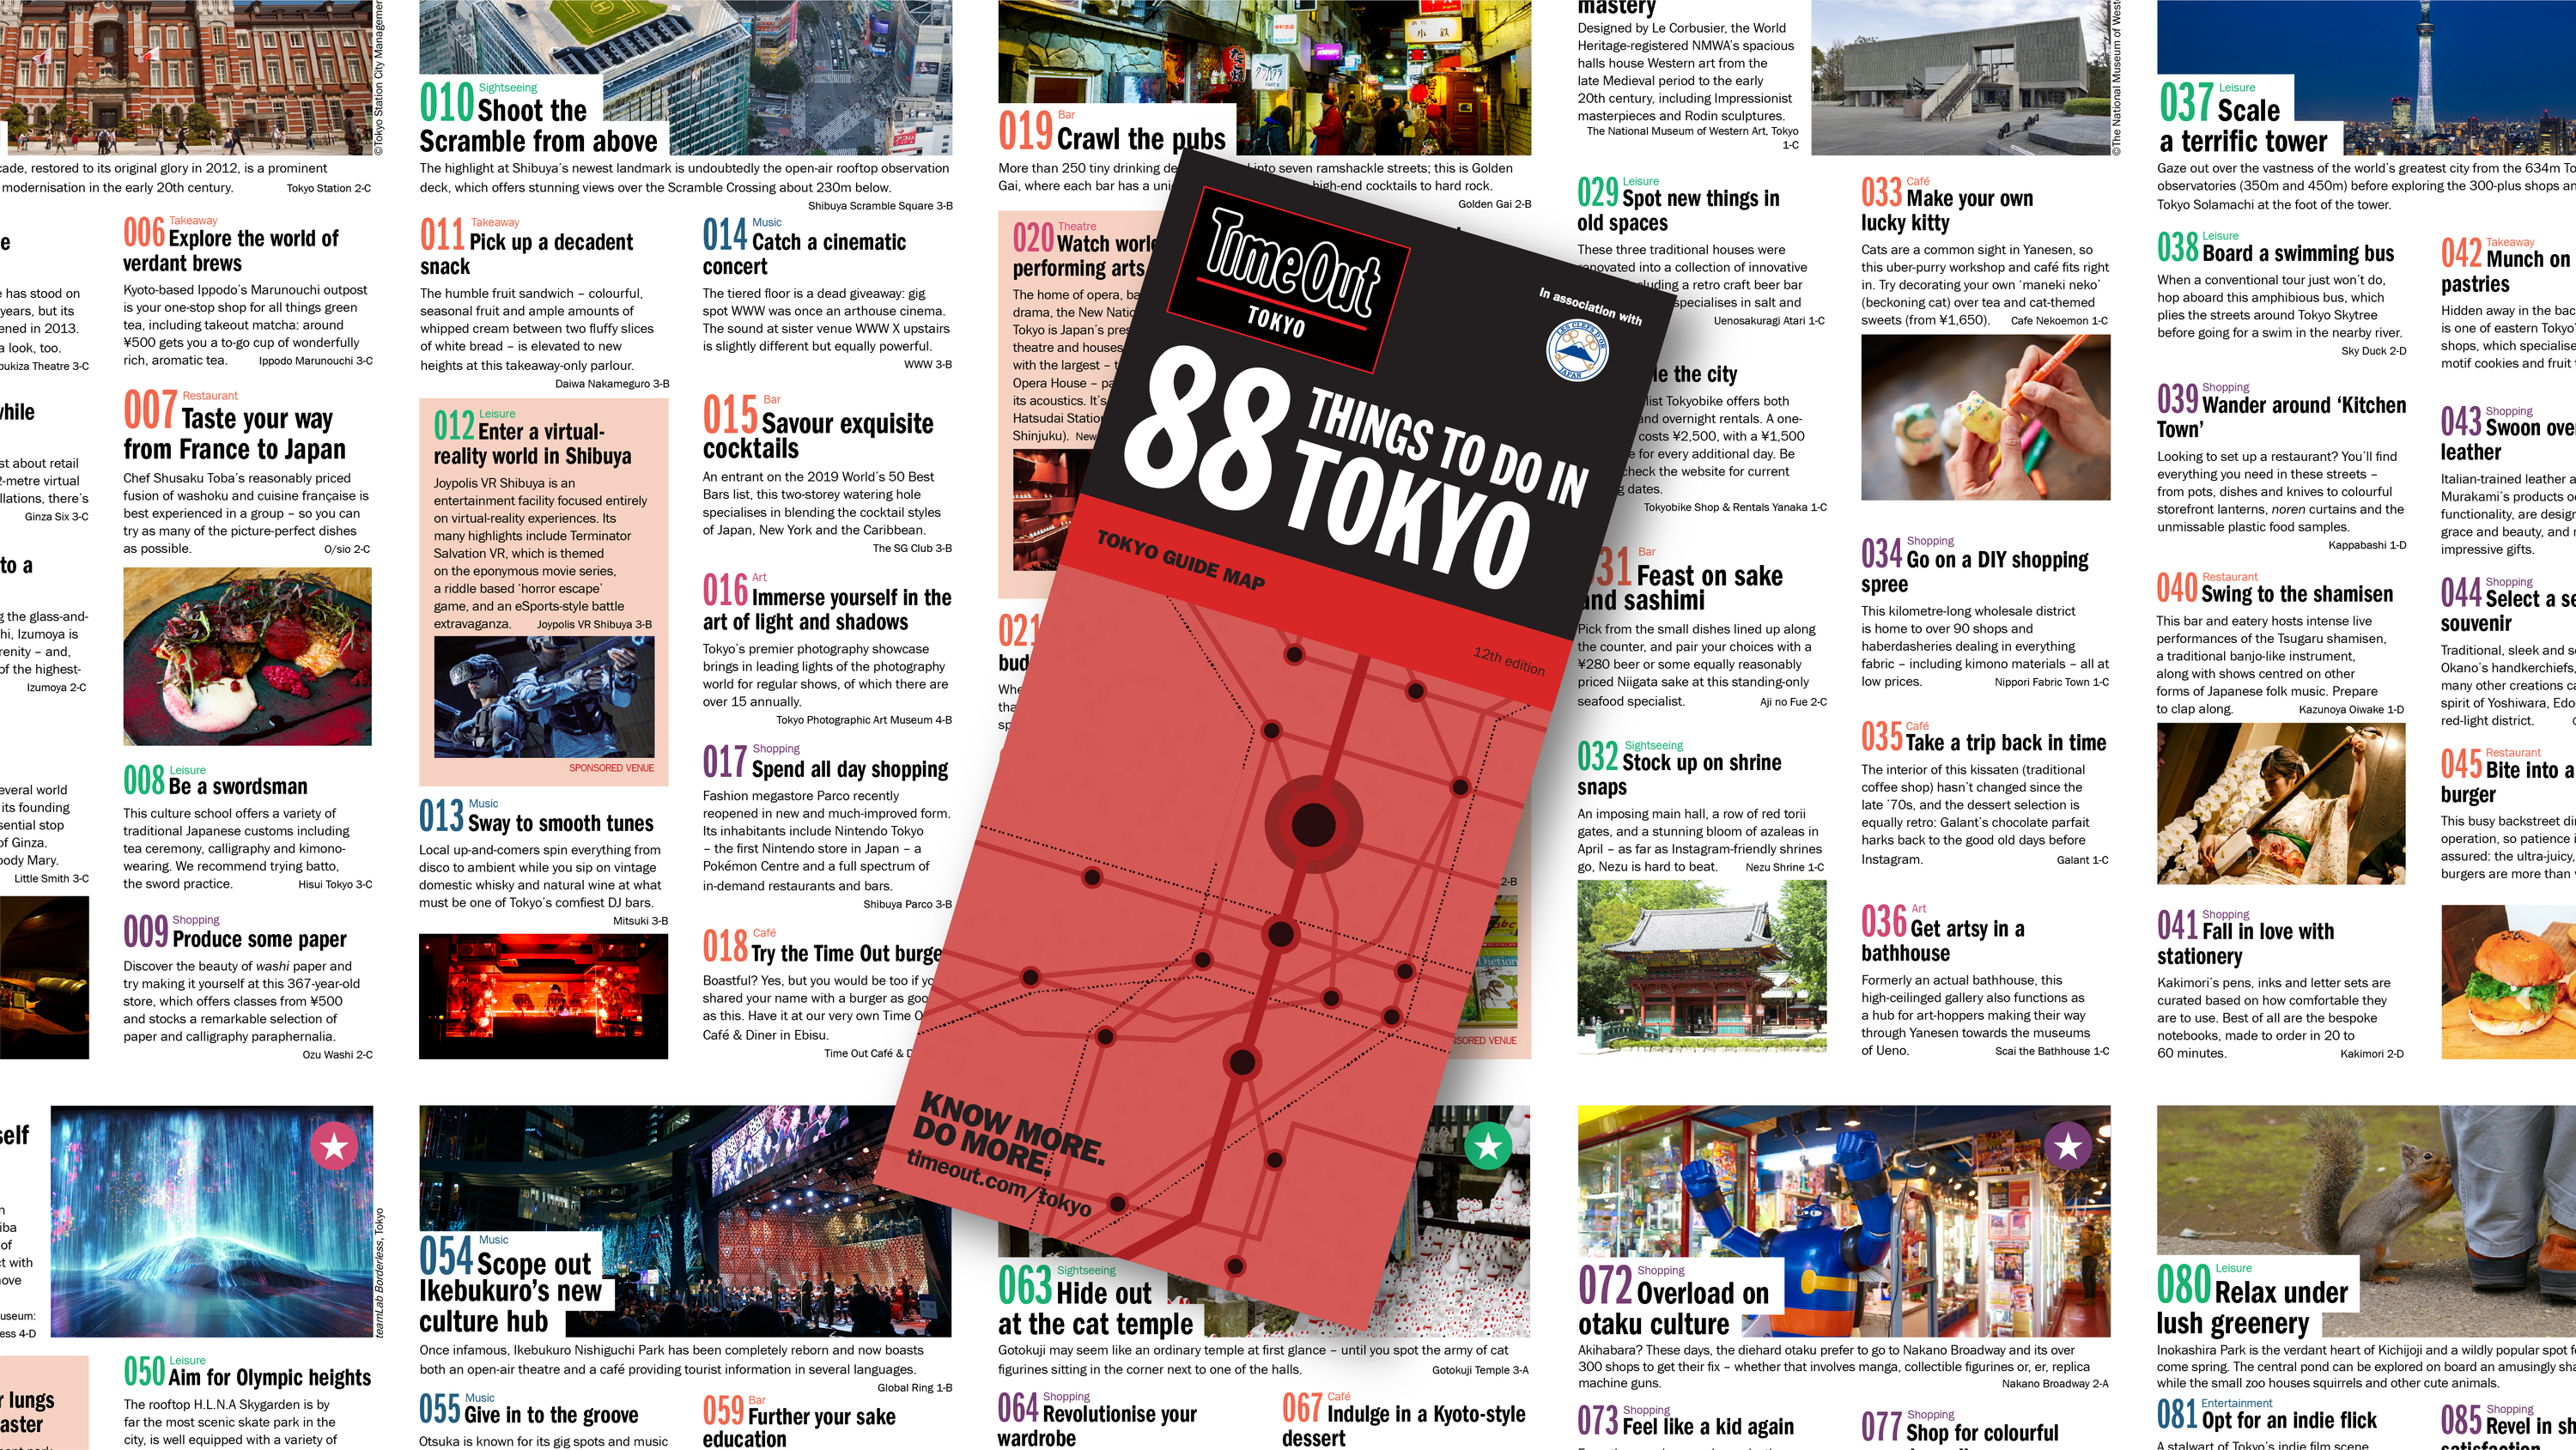 New release: 88 things to do in Tokyo guide map